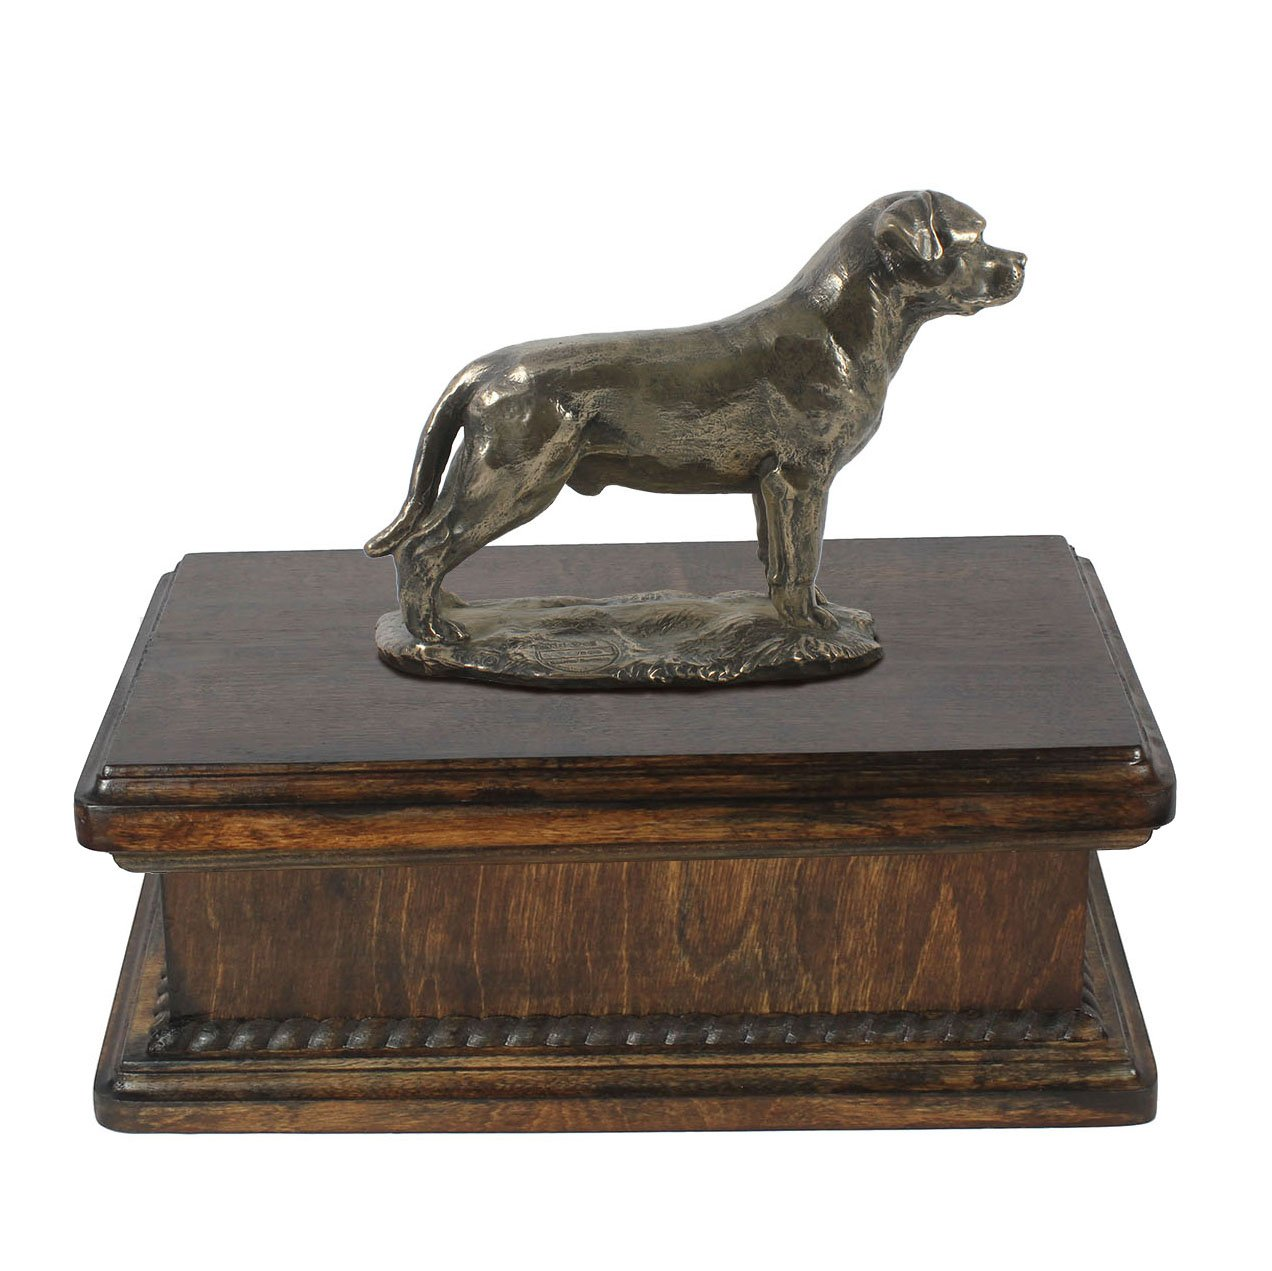 Rottweiler with tail, memorial, urn for dog's ashes, with dog statue, exclusive, ArtDog